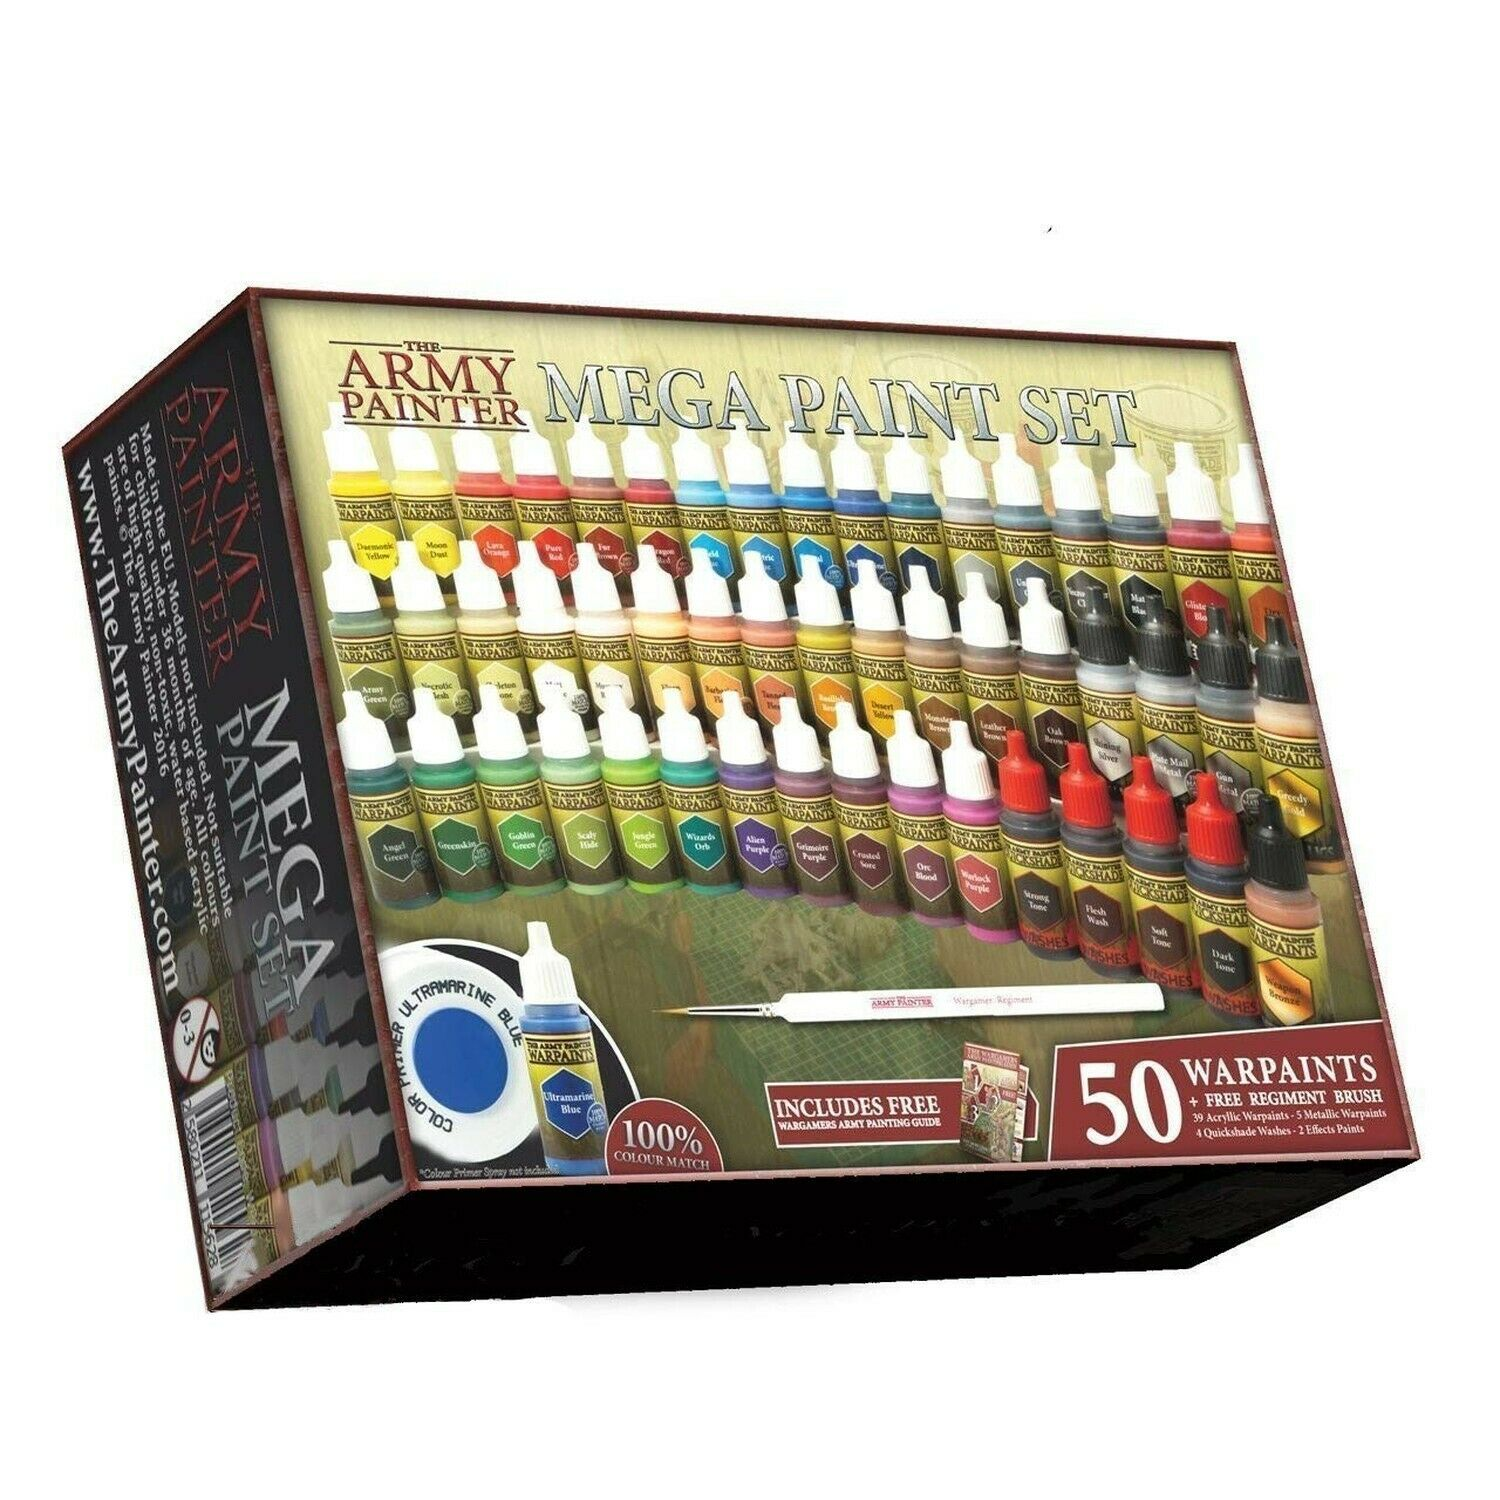 The Army Painter Wargamers Complete Paint Paint Paint Set 50 Paints 1 Brush 54b